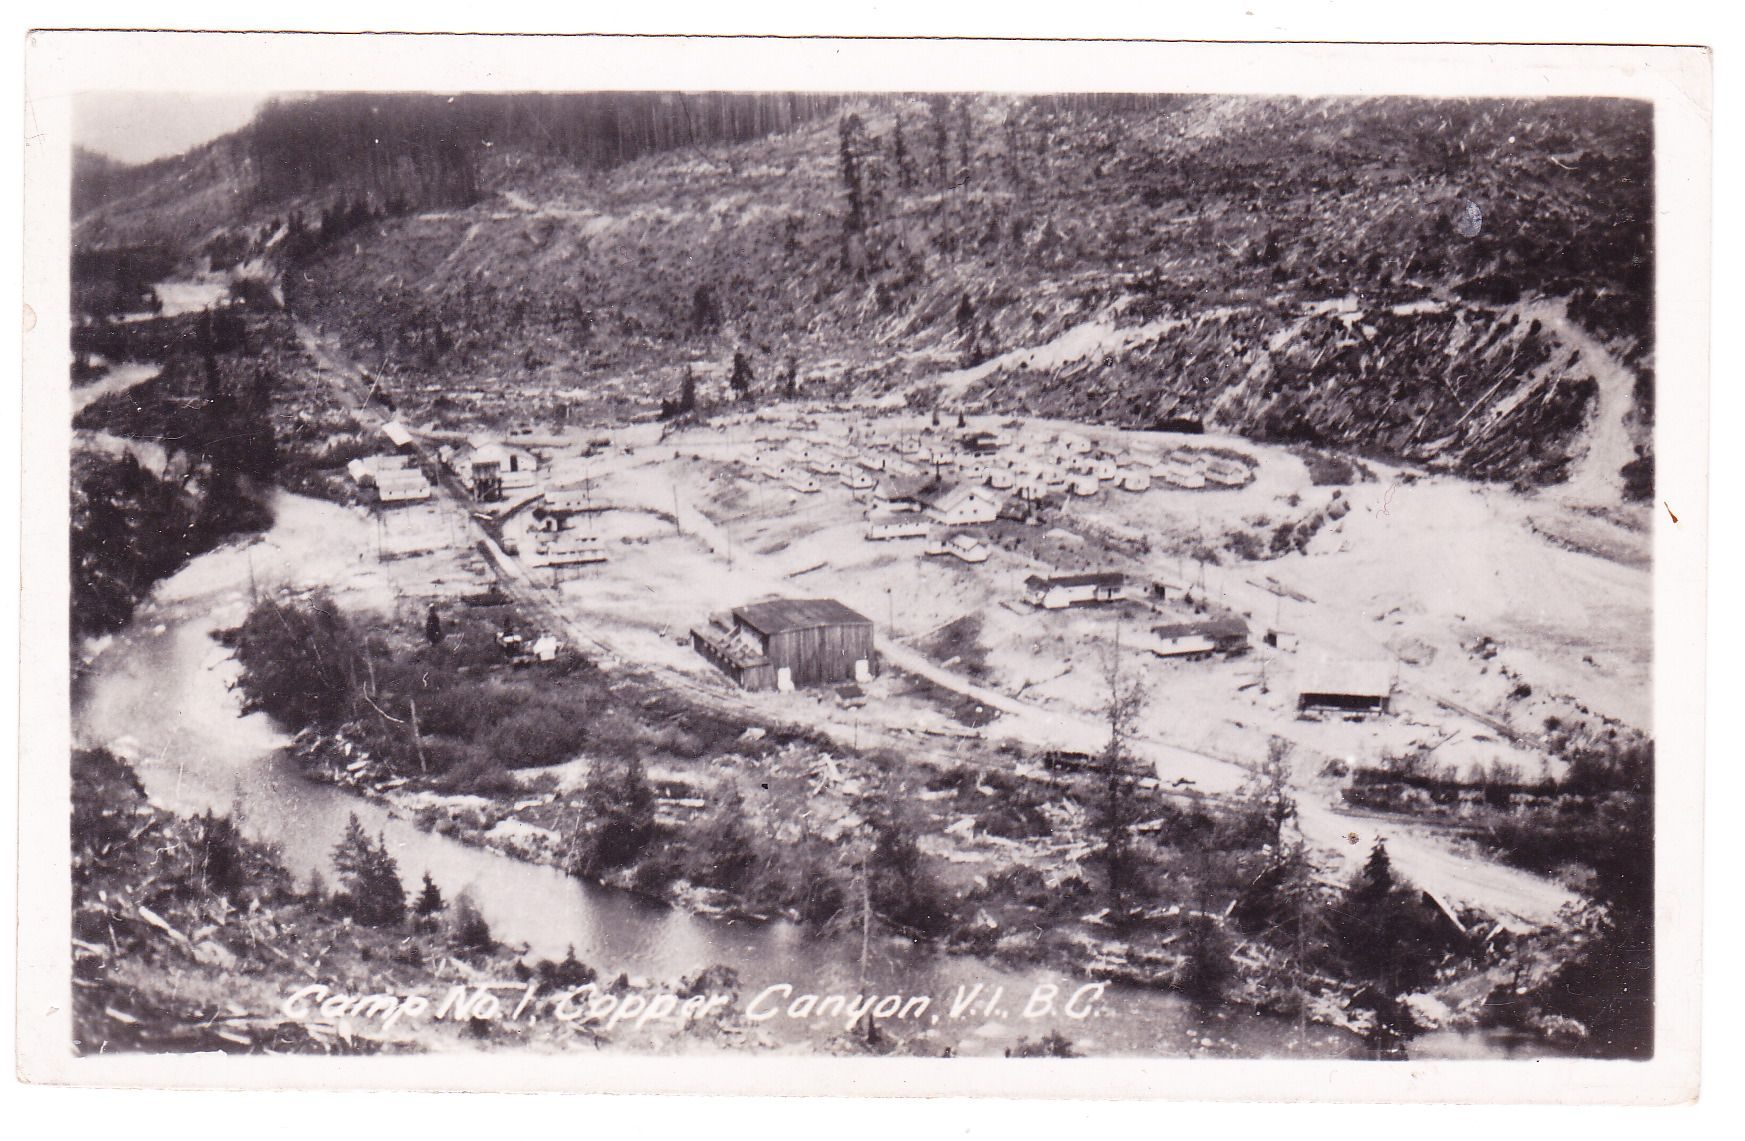 No.1 mining camp along Chemainus River, Vancouver Island